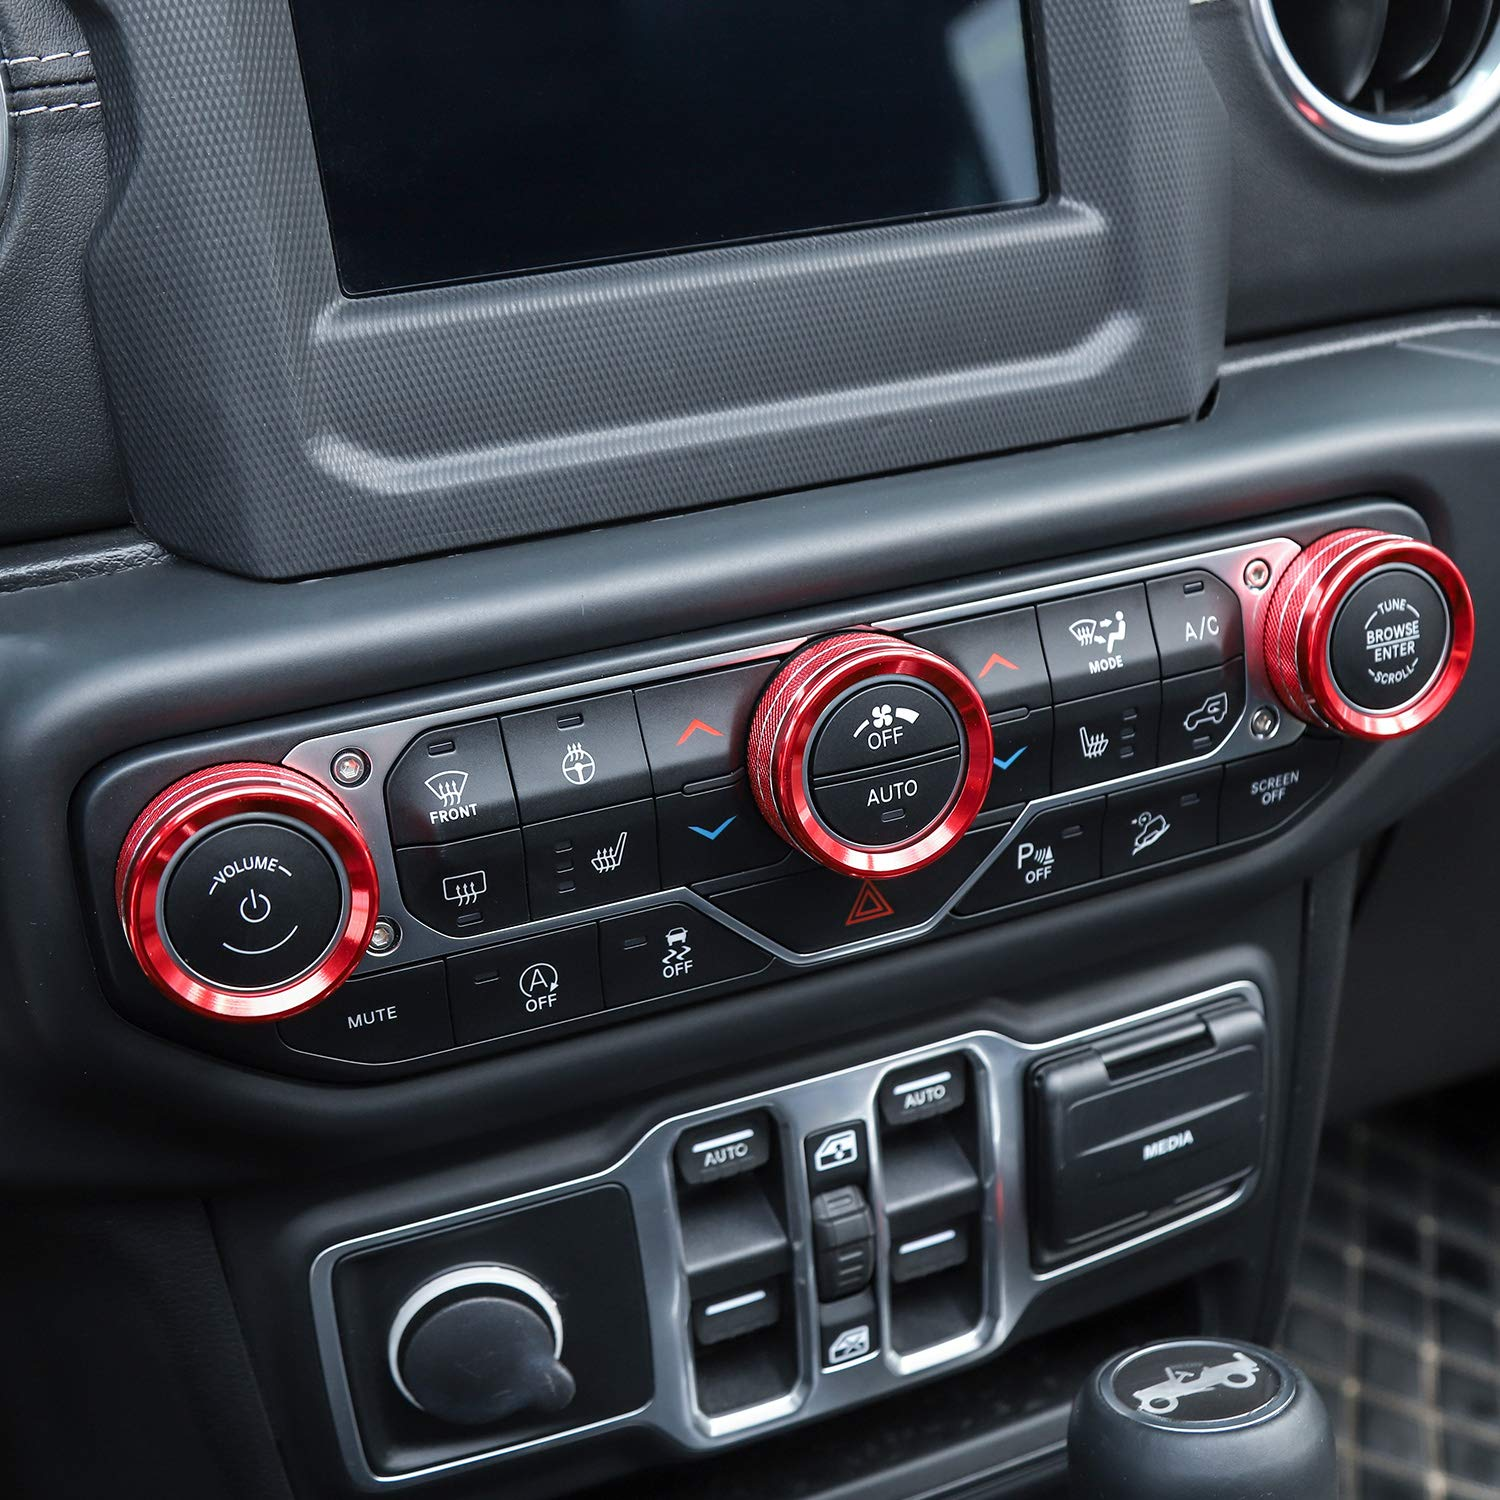 HIGH FLYING for Jeep Wrangler JL Unlimited Rubicon Sahara Sport//Sport S 2018 2019 2020 Car Accessories Dashboard A//C Air Vent Decor Ring Trim ABS Red 4pcs